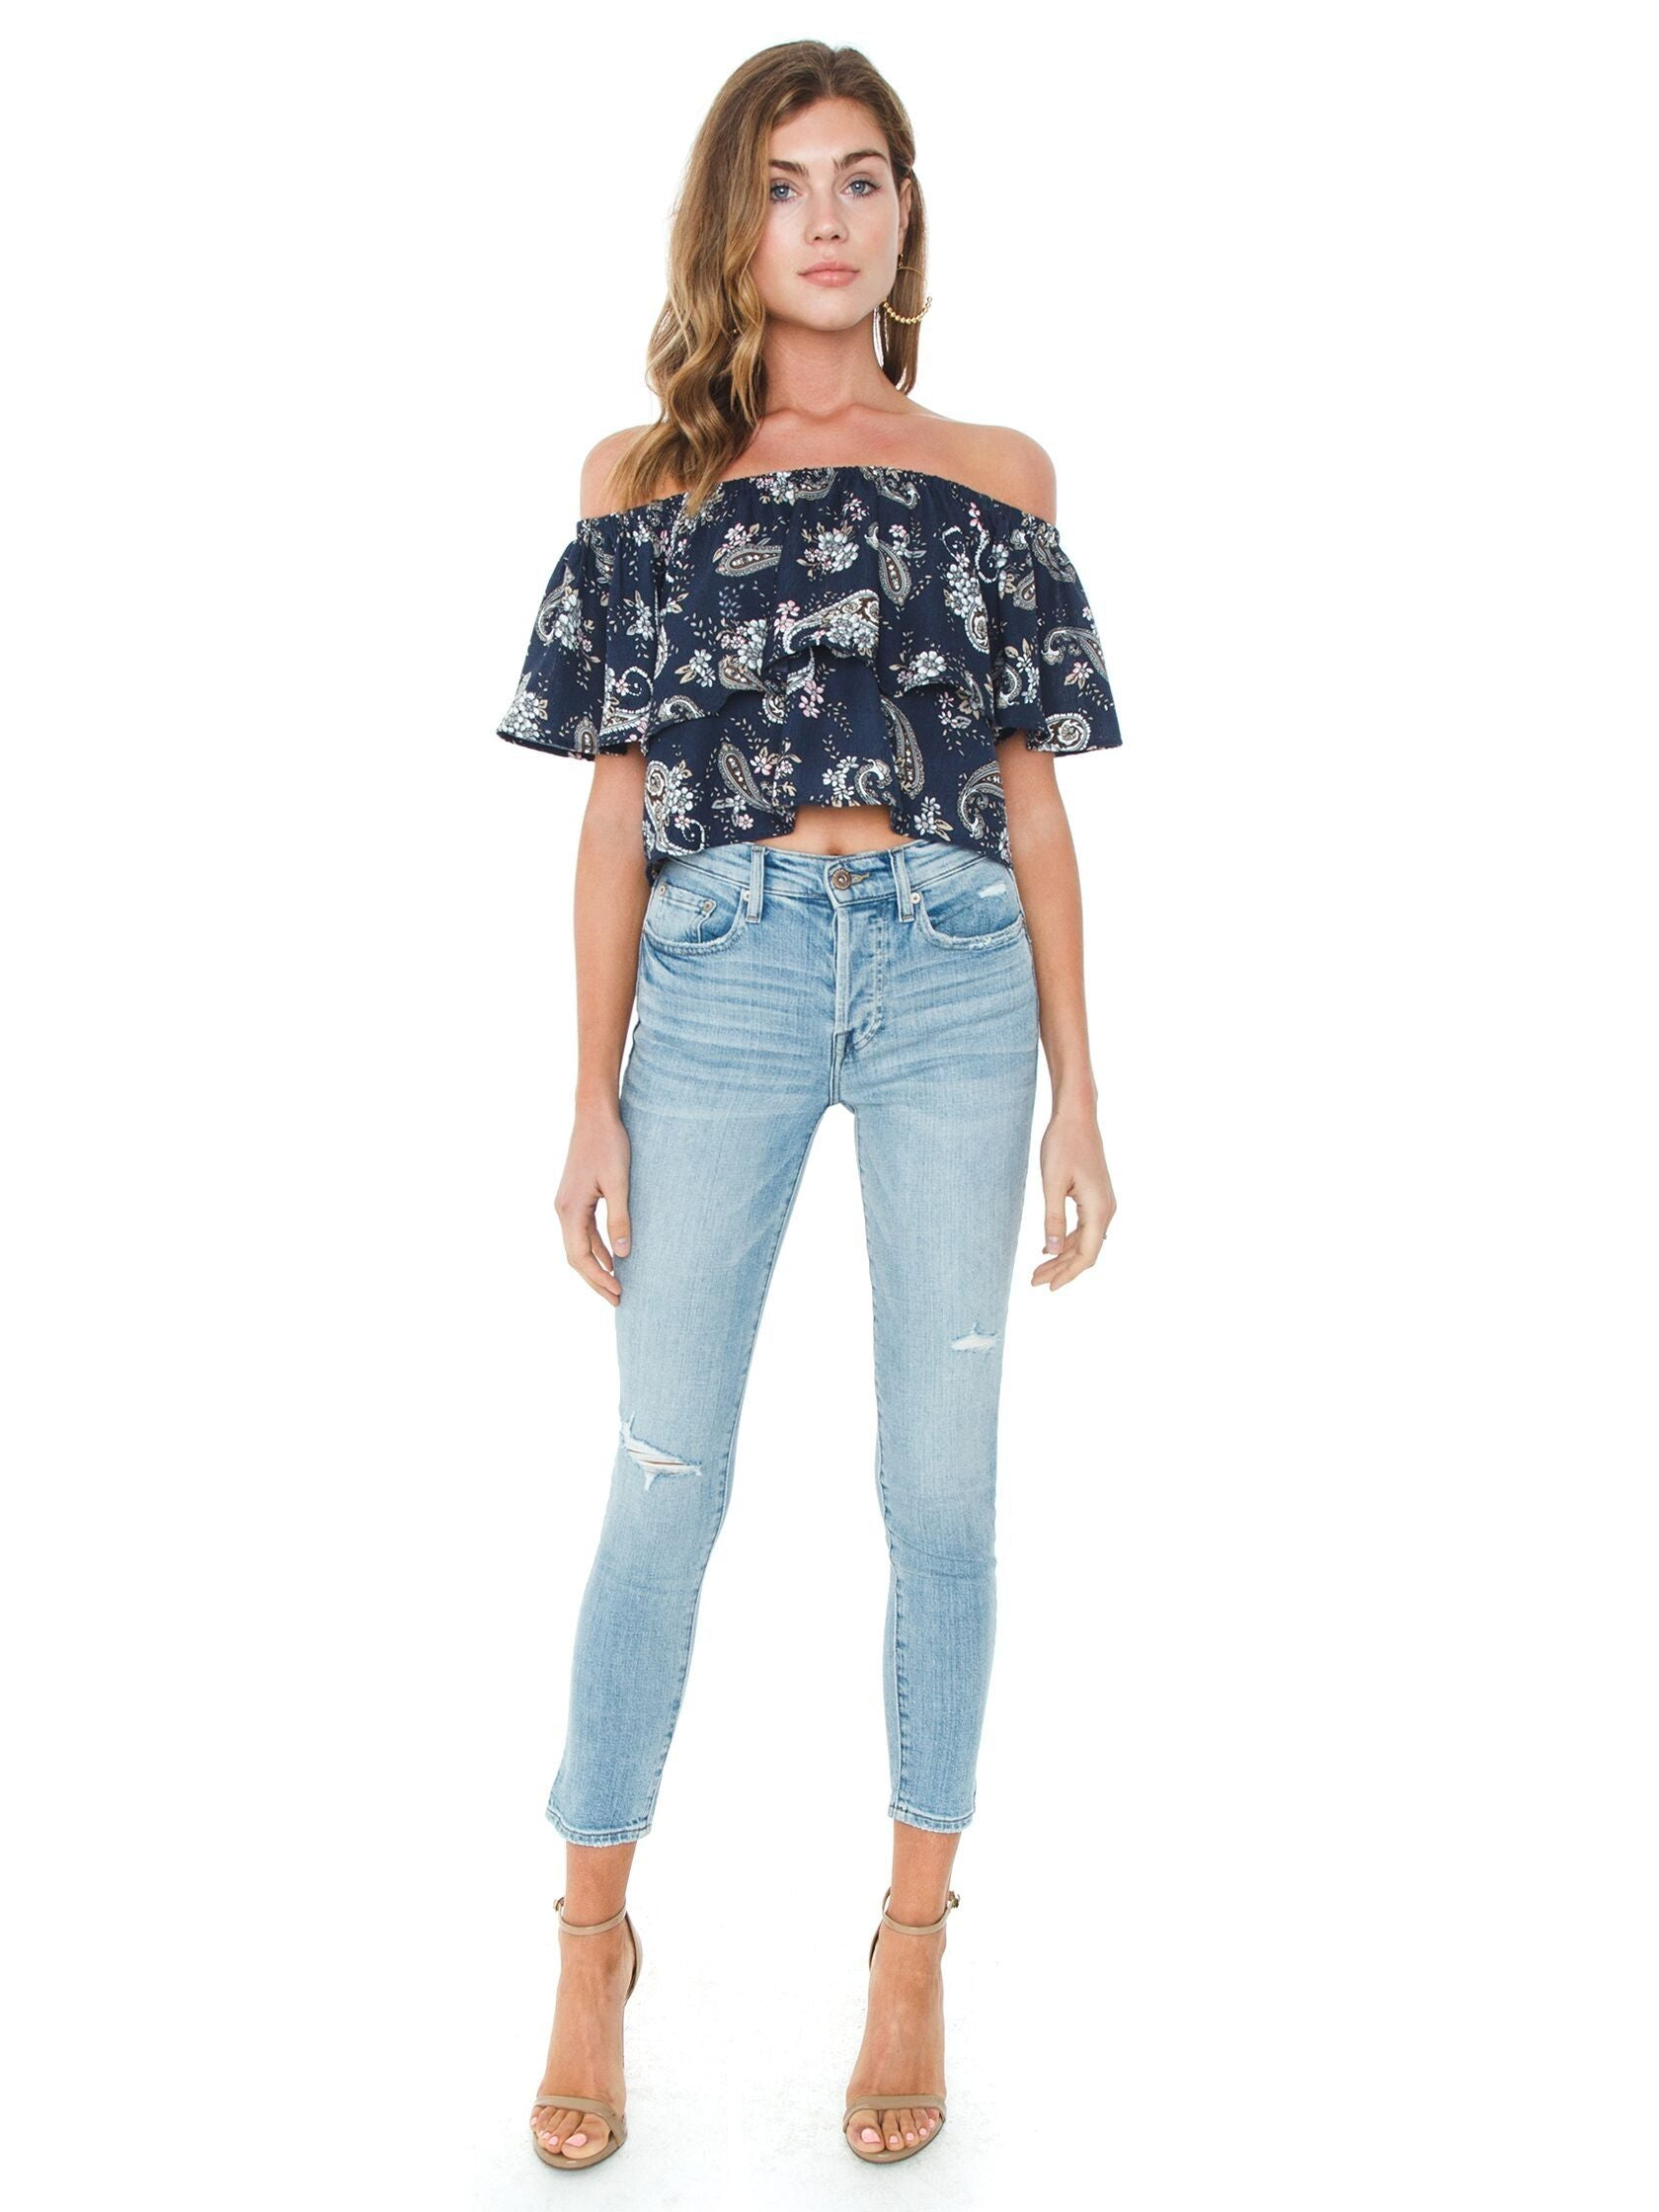 Girl wearing a top rental from J.O.A. called Off Shoulder Top